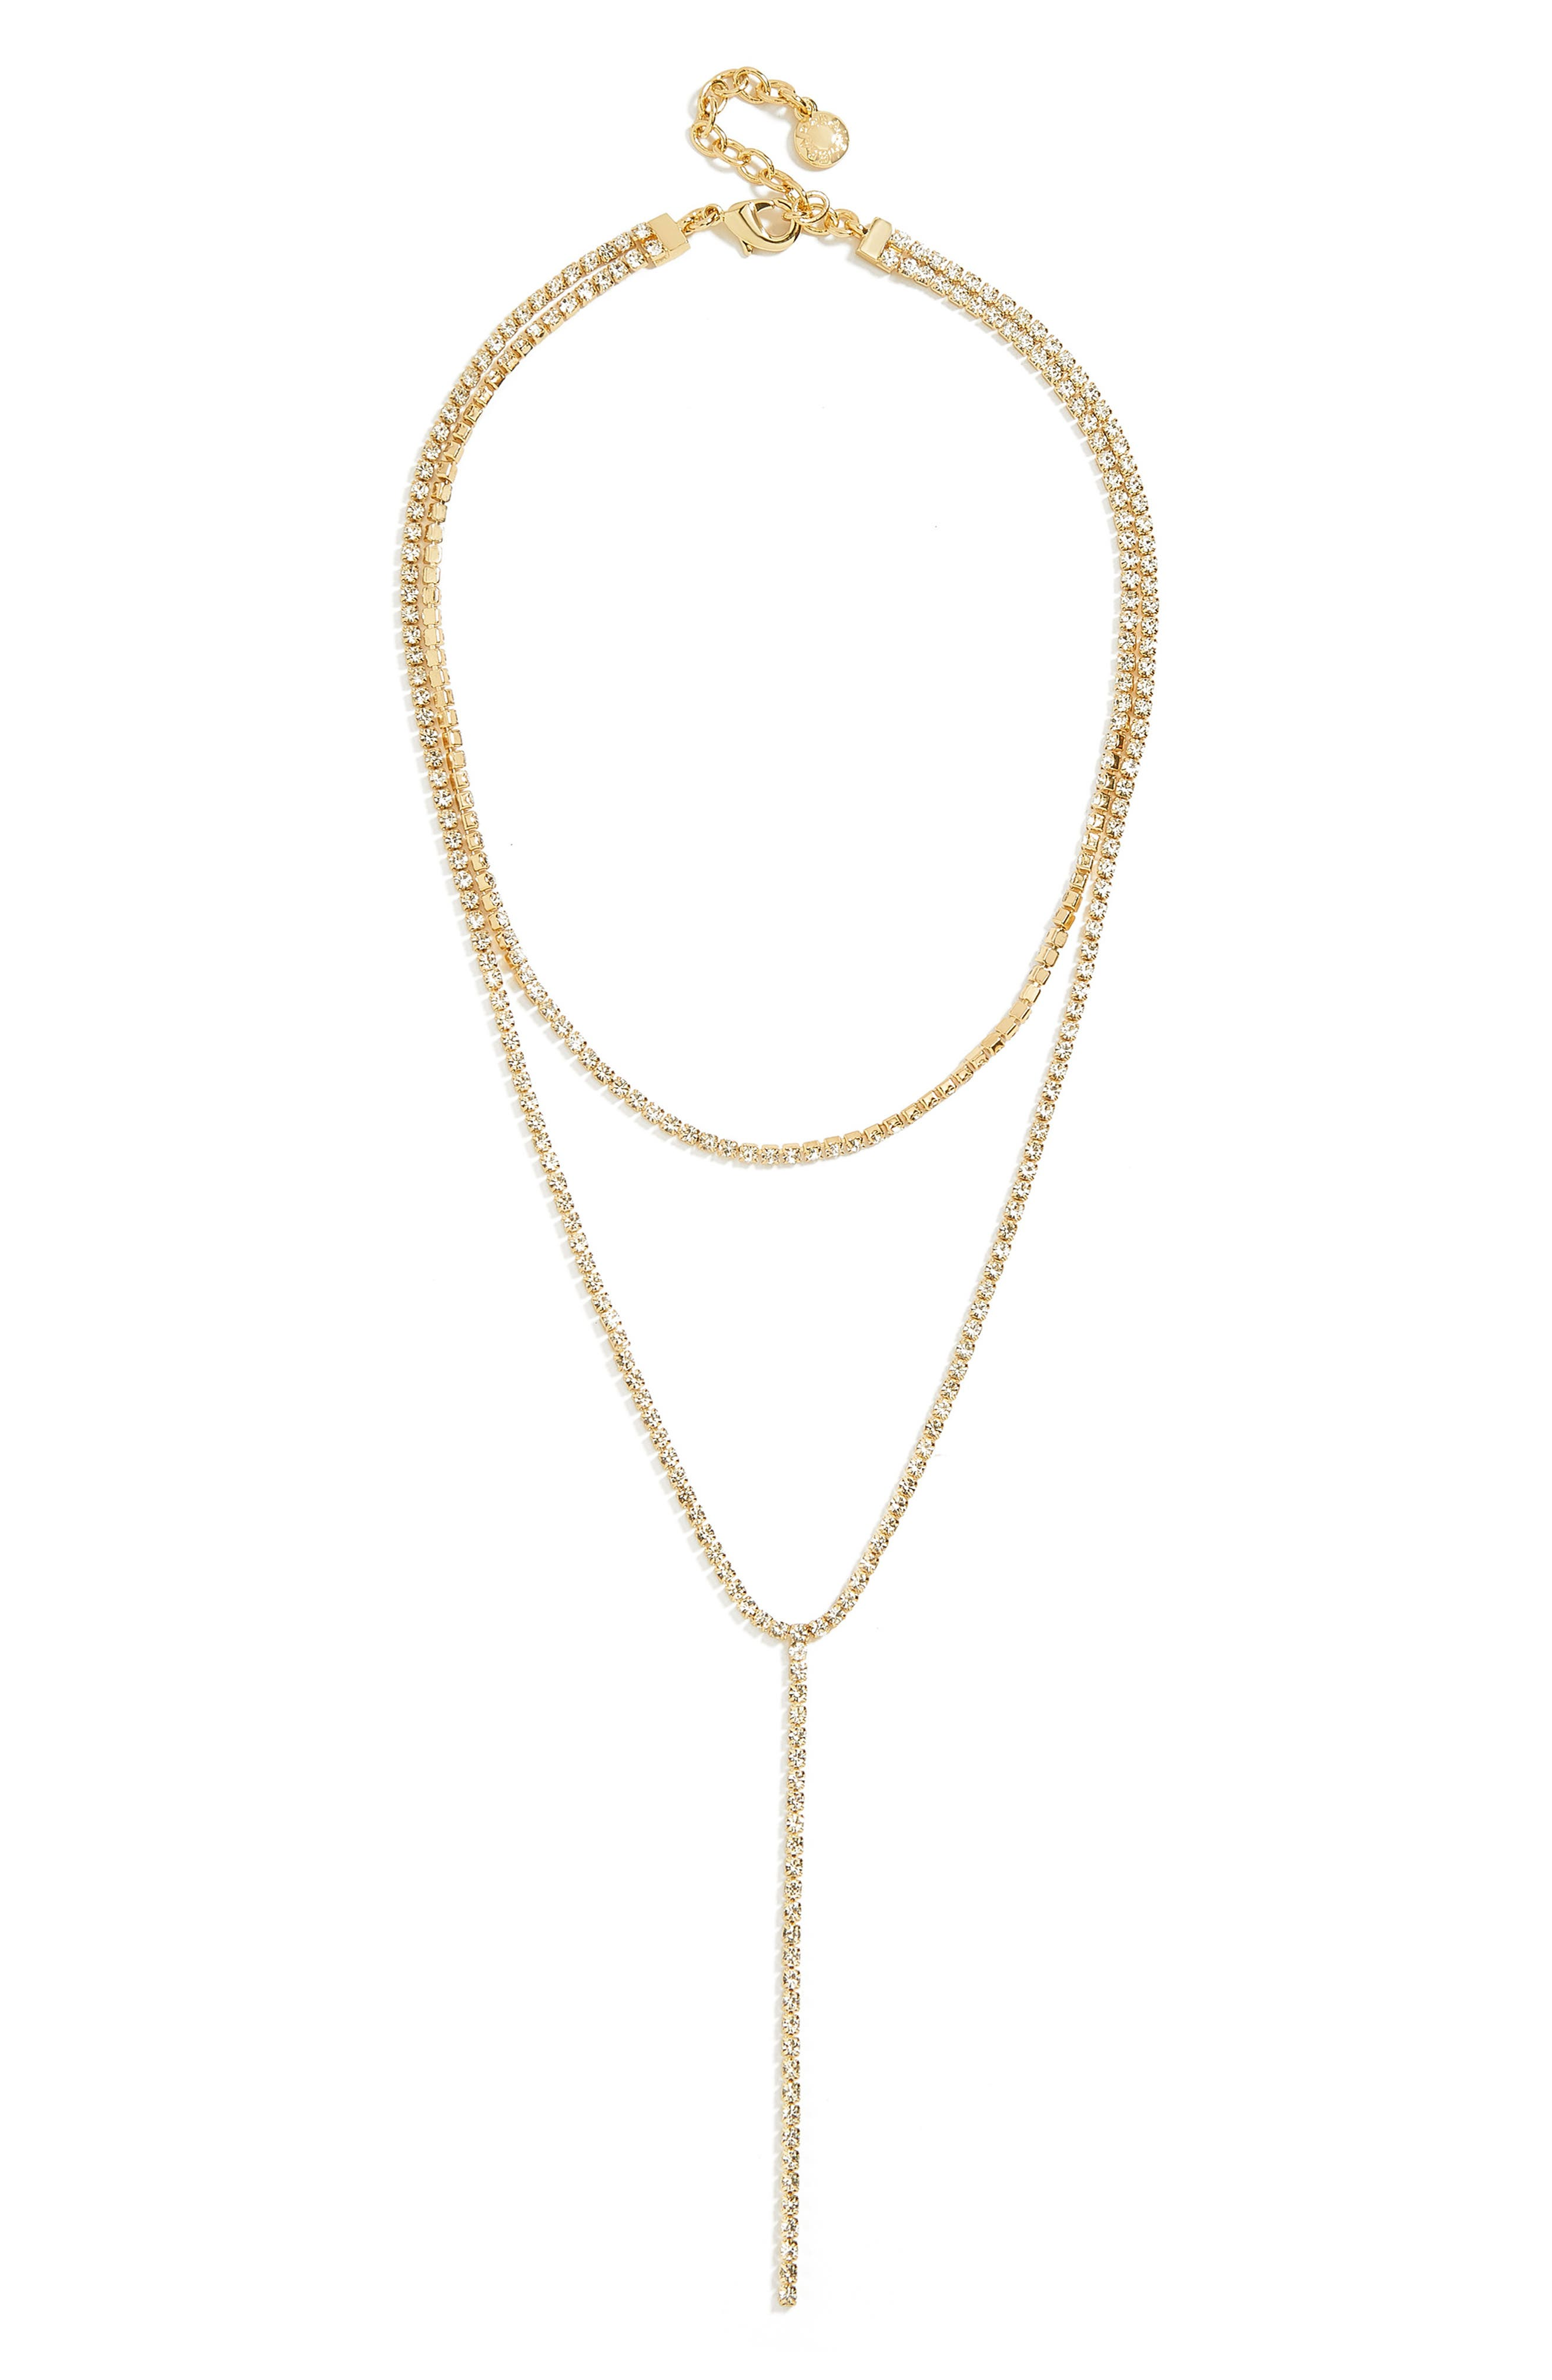 BAUBLEBAR, Skyler Layered Y Necklace, Main thumbnail 1, color, GOLD